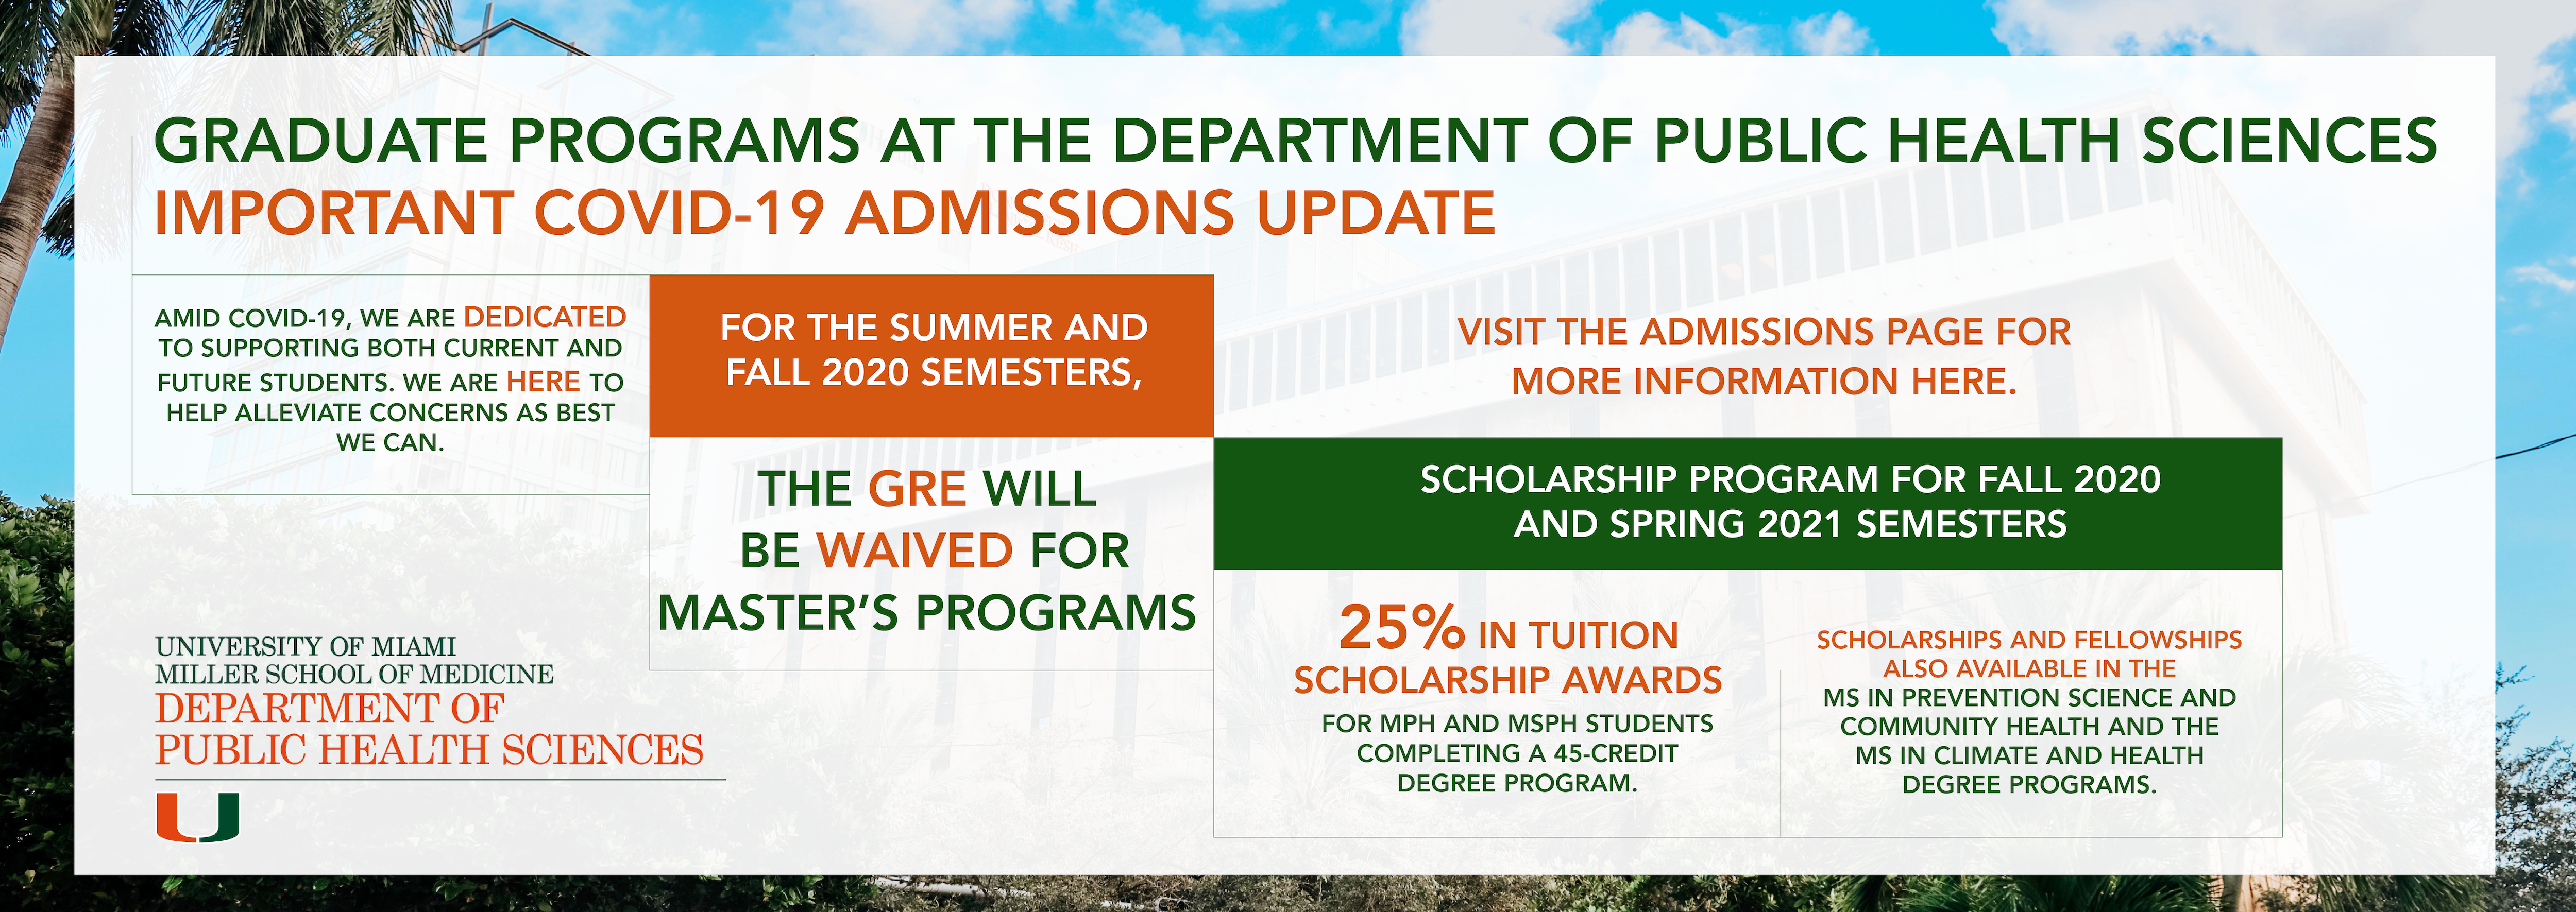 admissions update